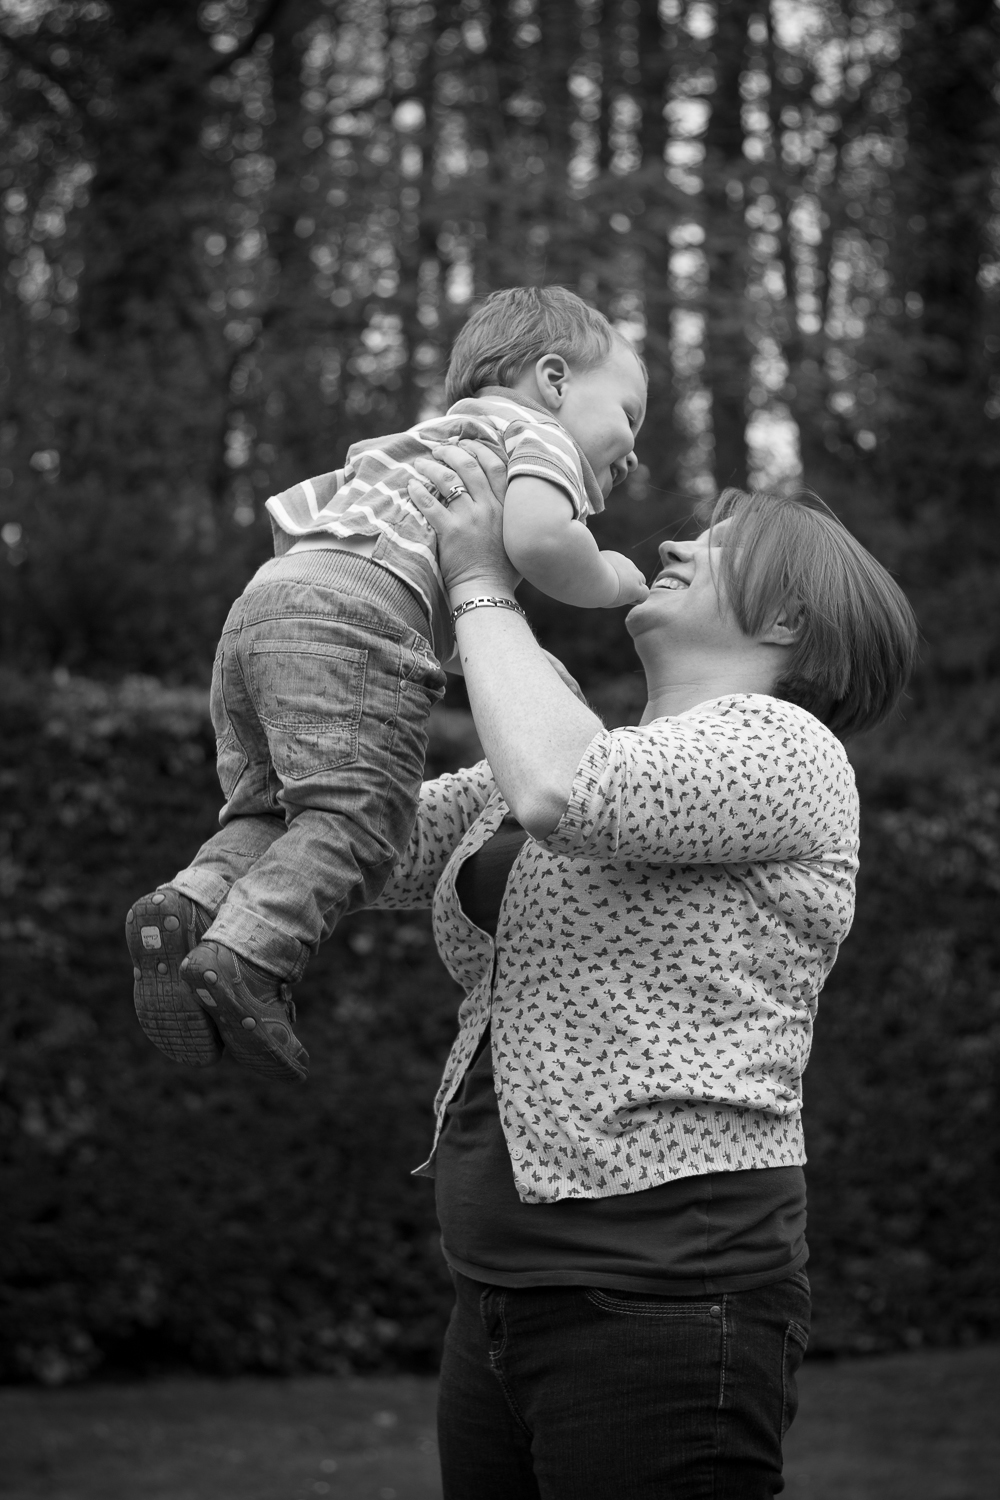 Mum lifting up her toddler into the air and smiling